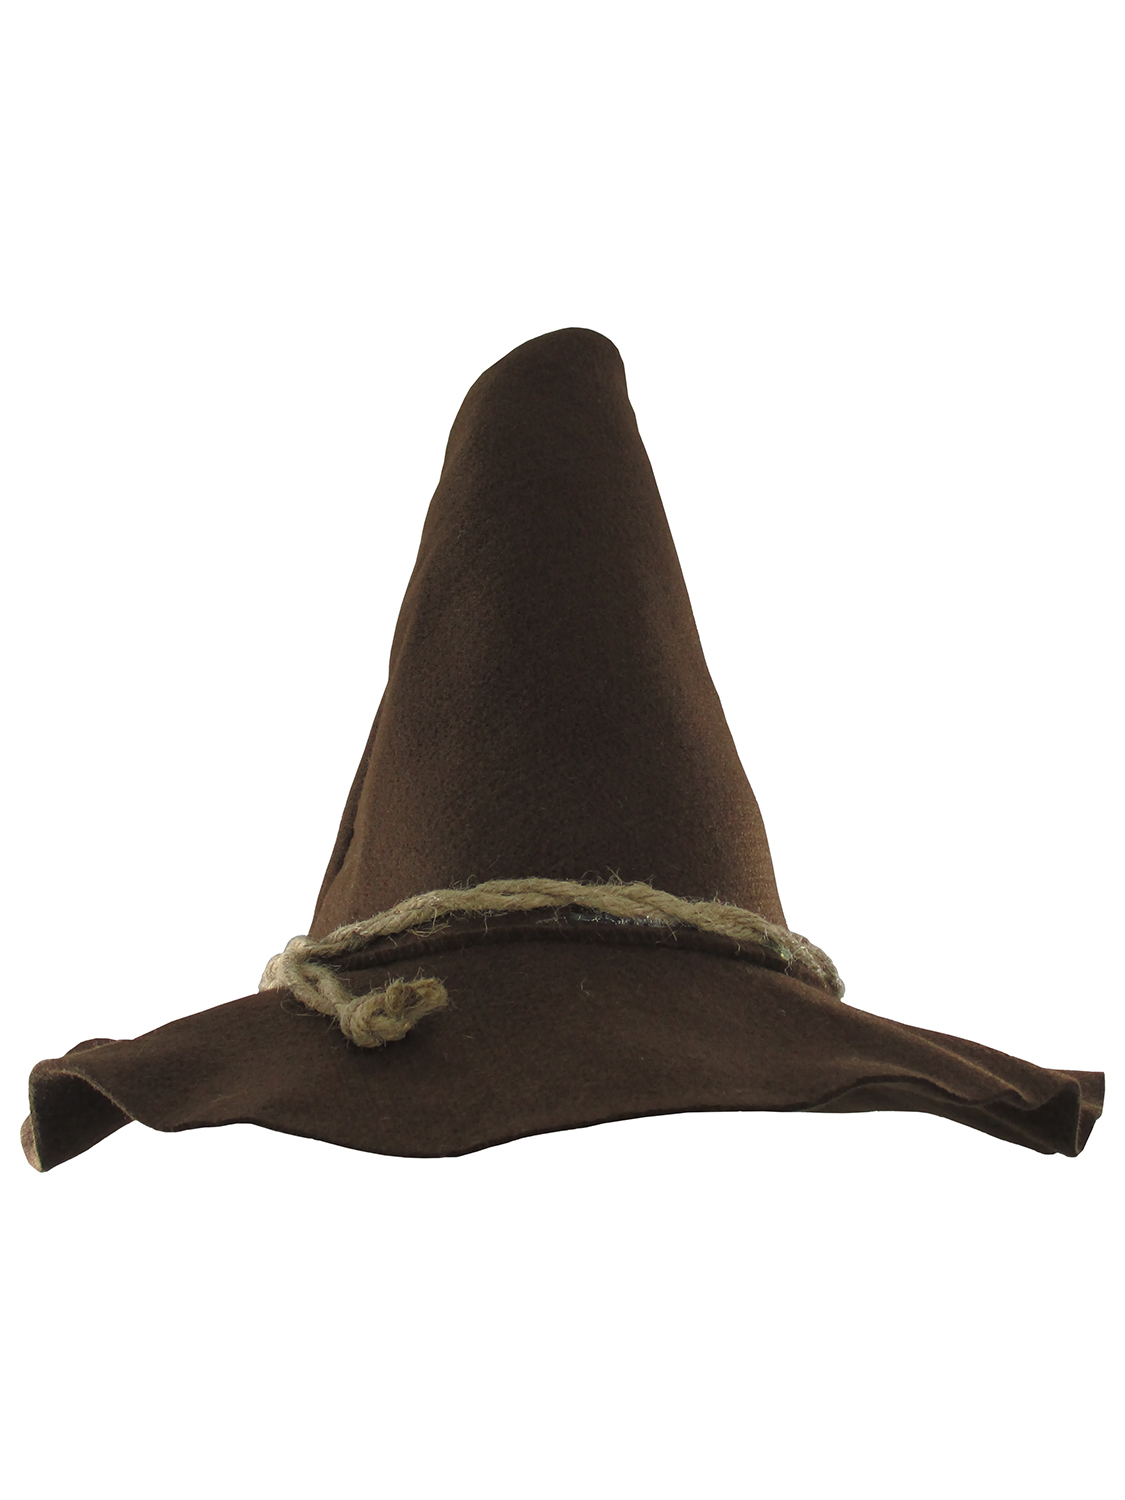 thumbnail 9 - Adult Scarecrow Hat Deluxe Felt Oktoberfest Wizard Witch Hillbilly Hat Costume